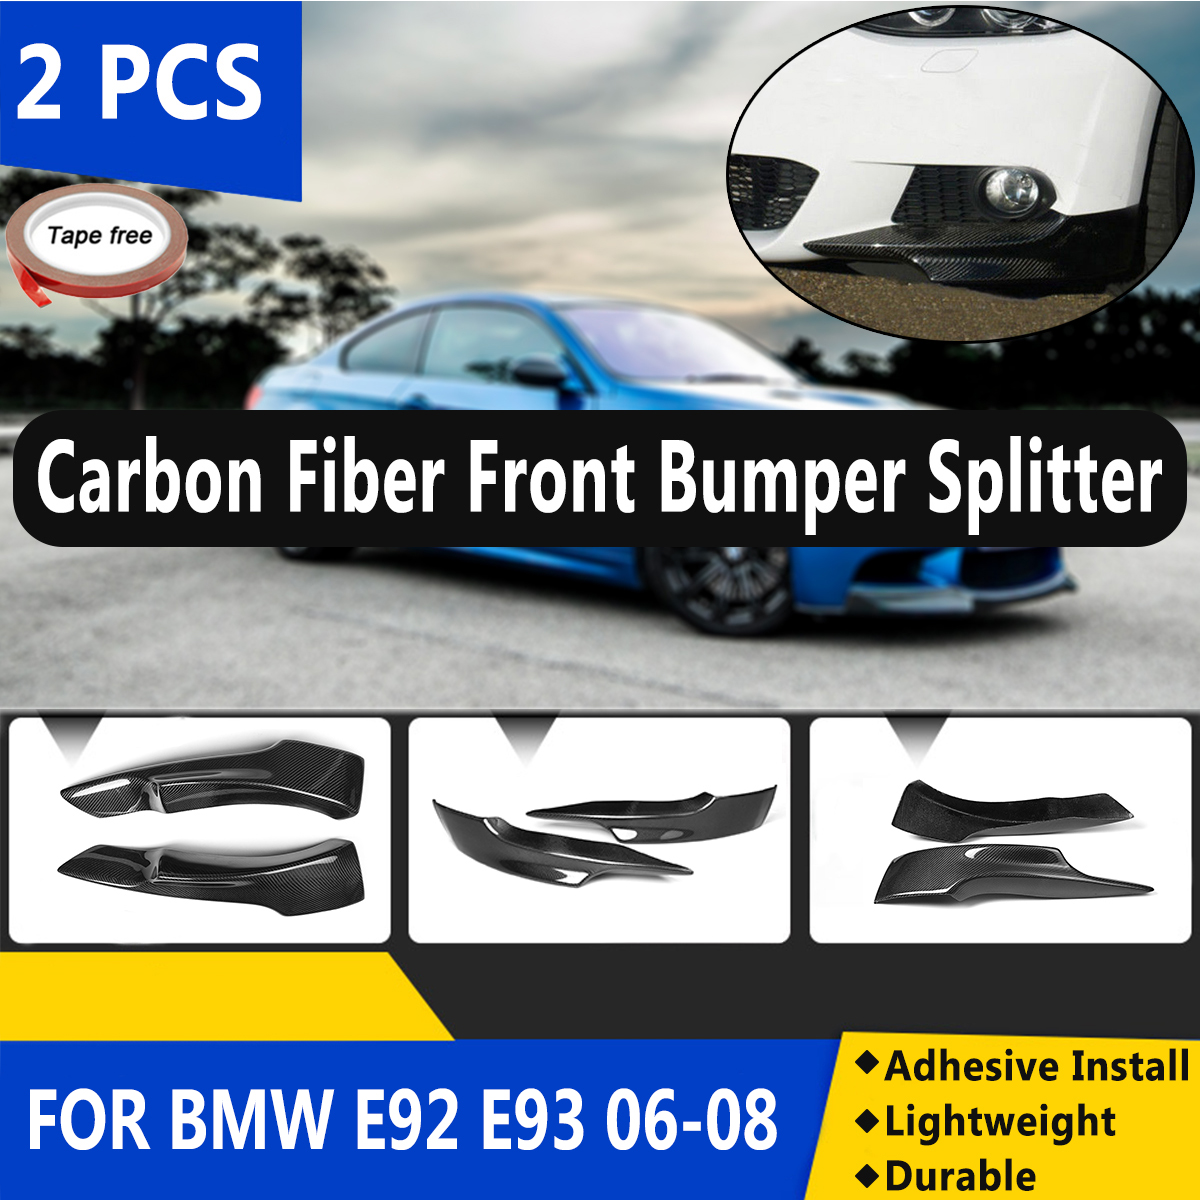 2PCS Carbon Fiber M Sport Front Bumper Side Splitter Diffuser Lip for BMW E92 E93 2006 2007 2008 PRE-LCI M-Tech